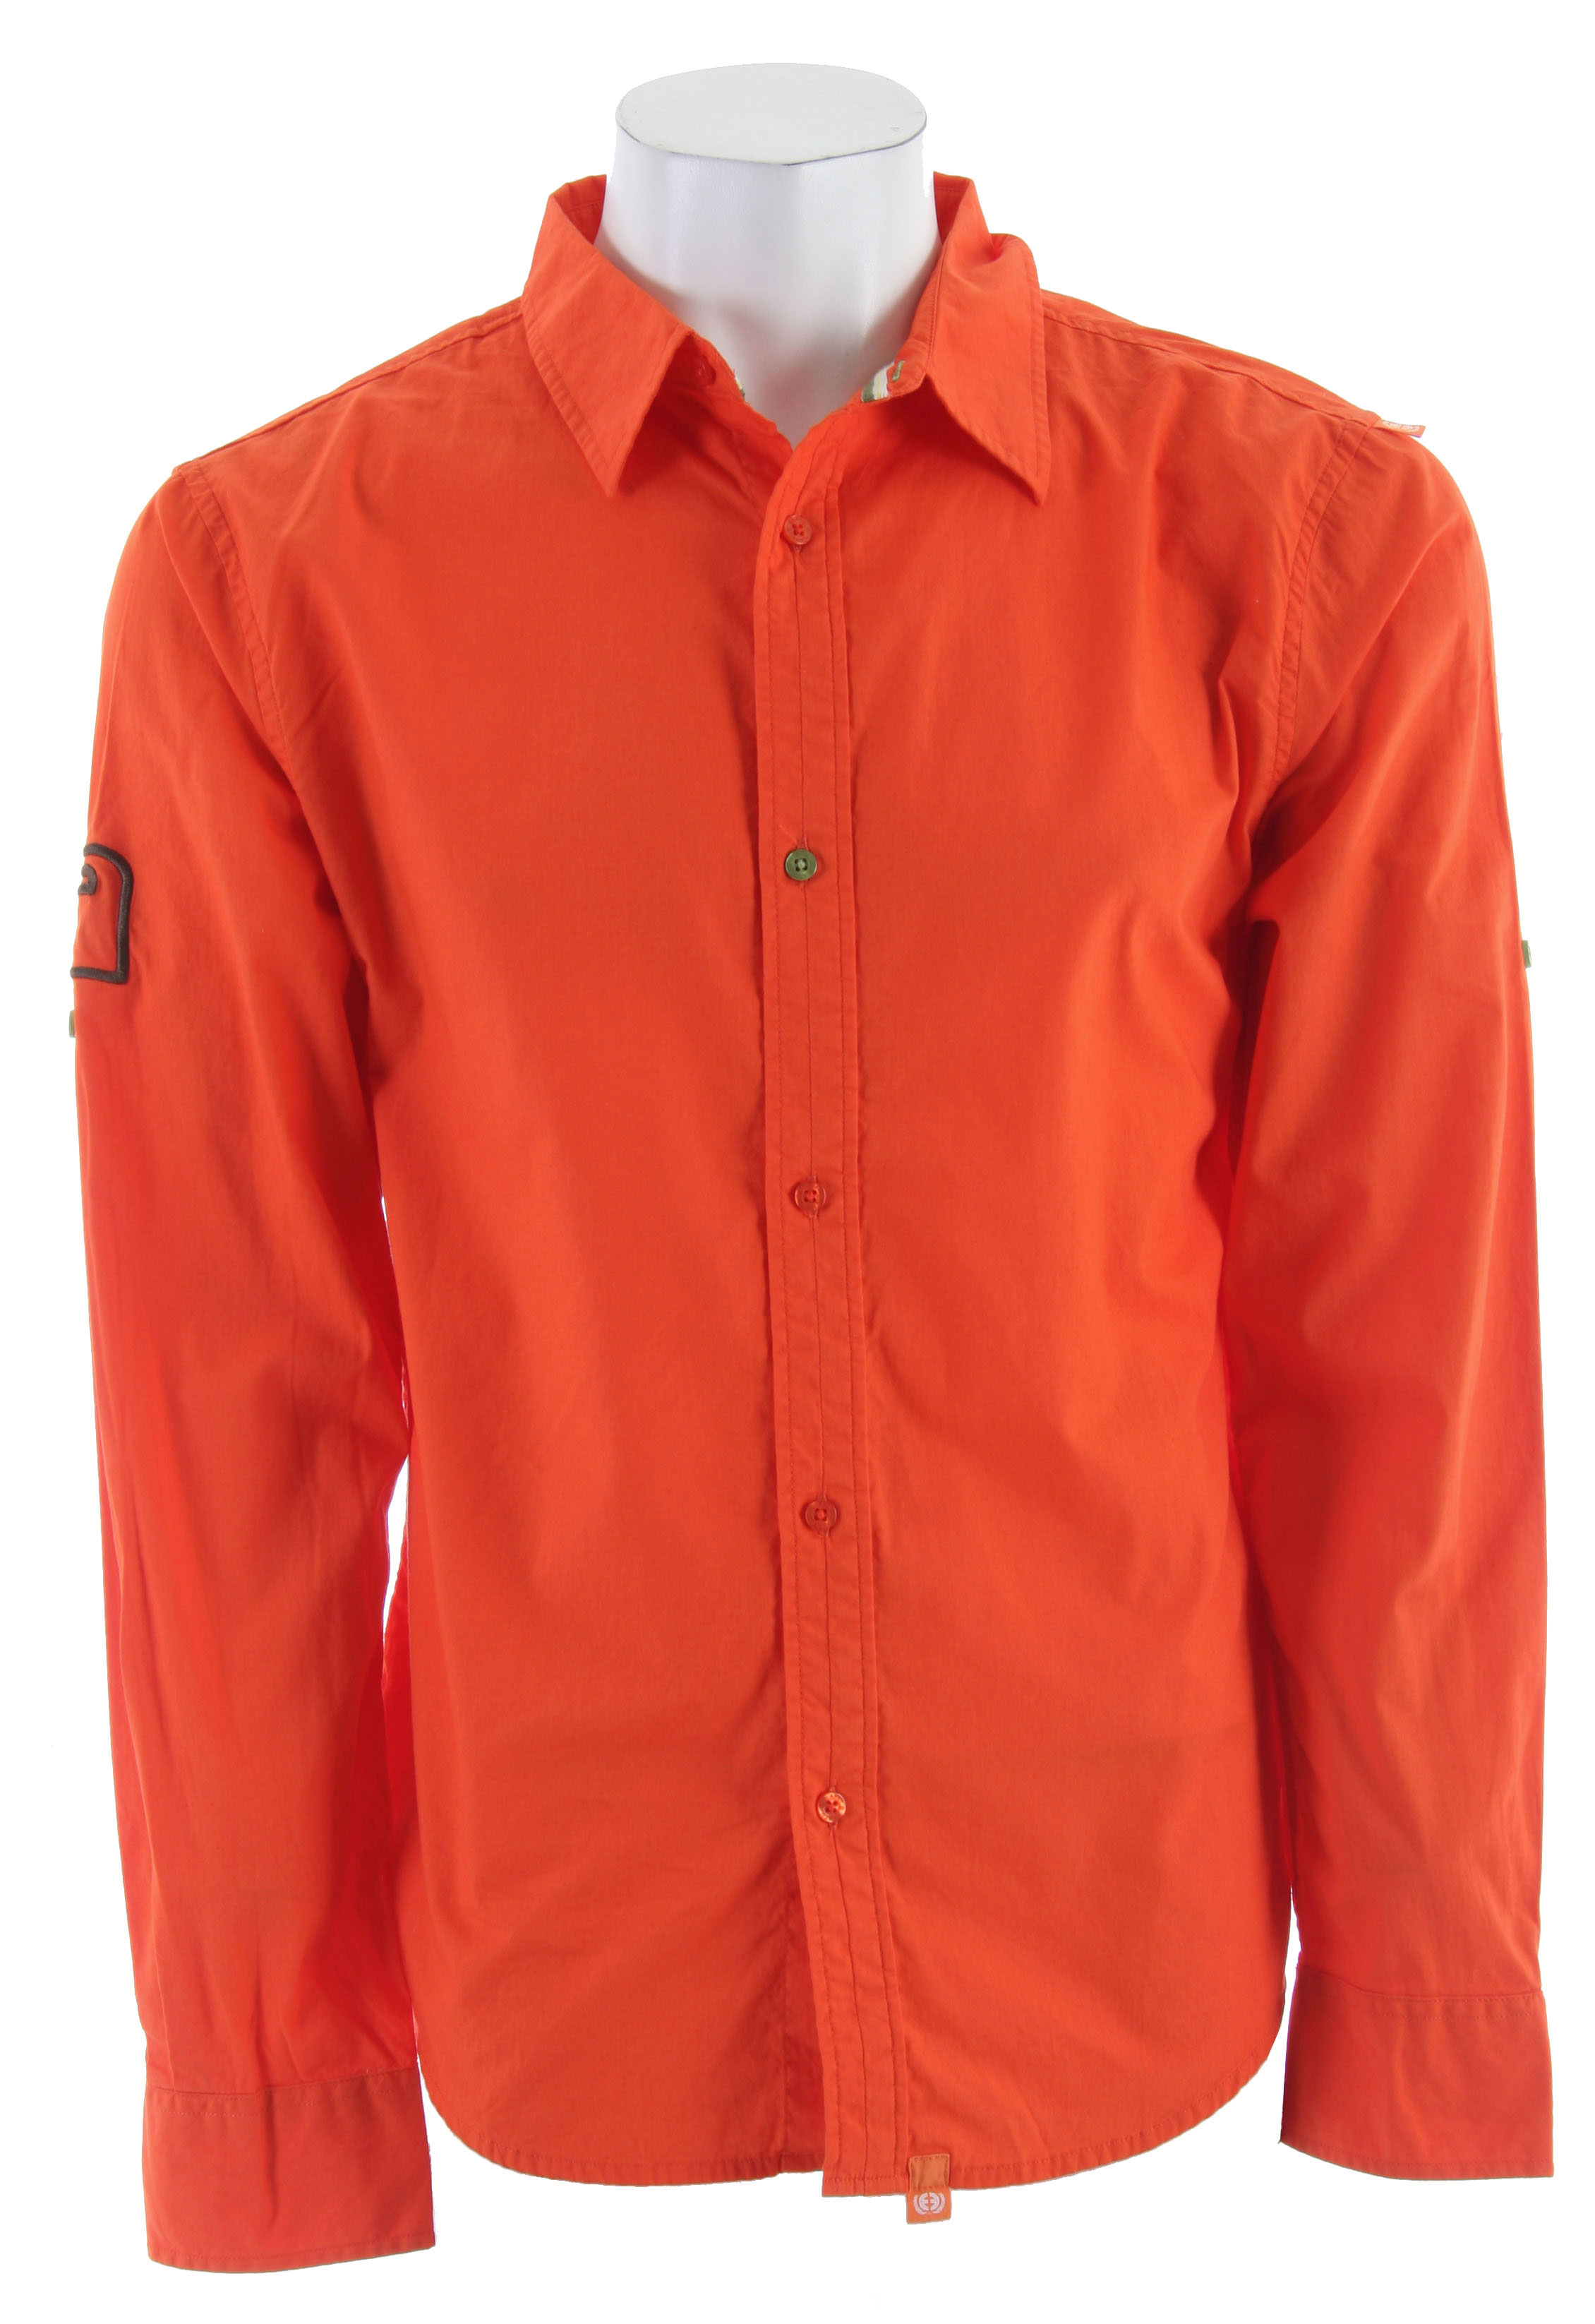 Planet Earth Scout L/S Shirt Spice Orange - $20.95